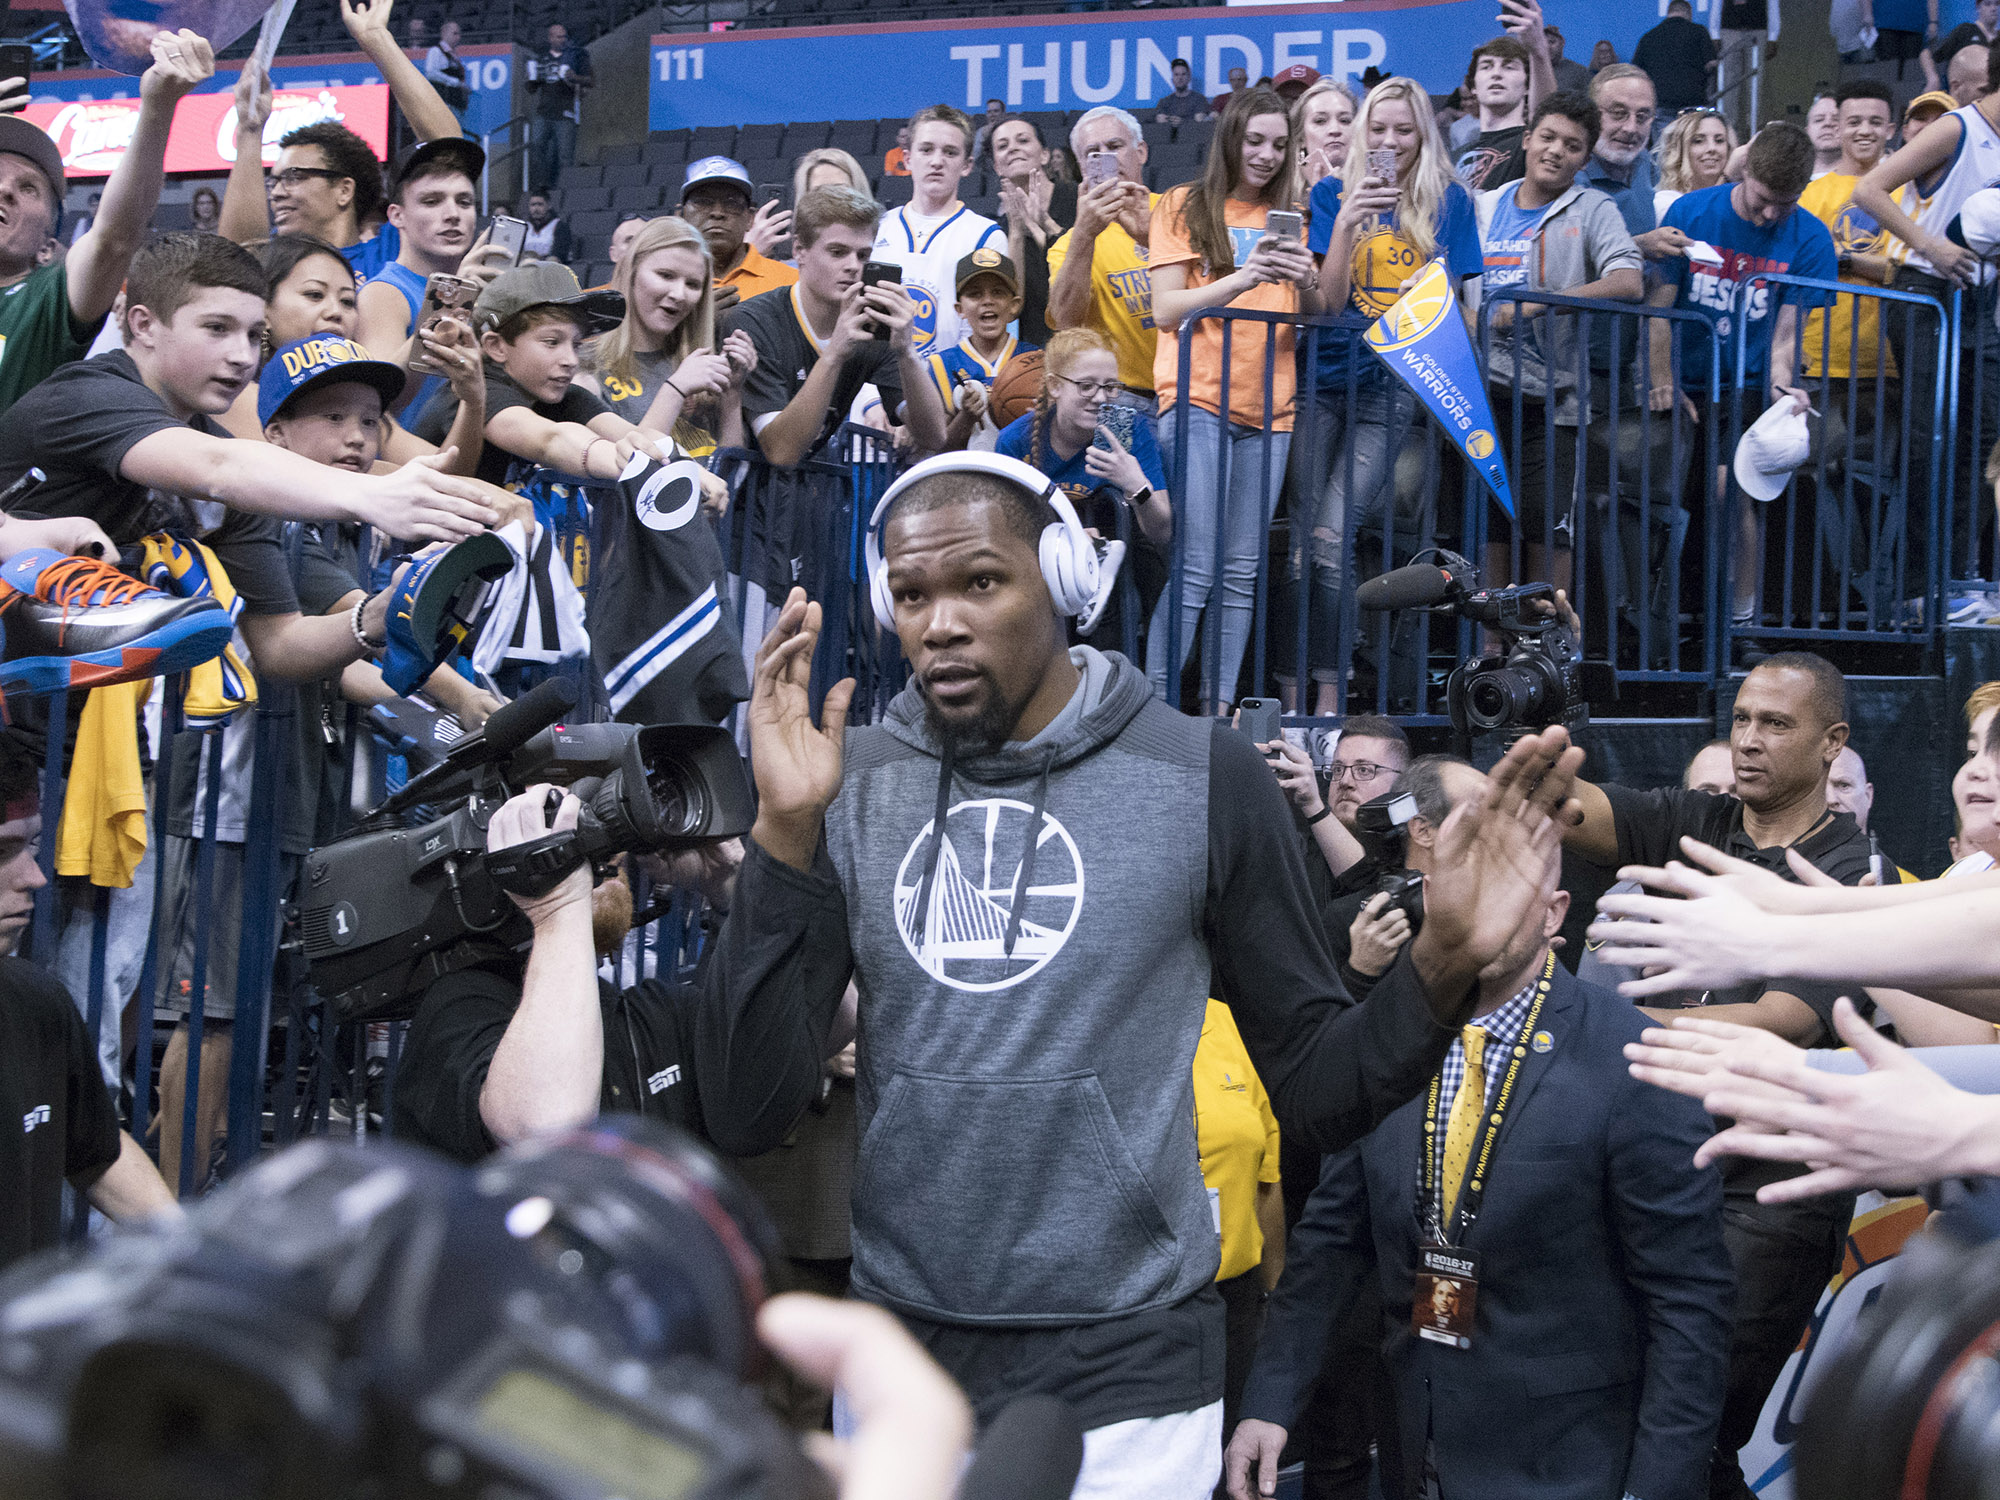 Warriors own Thunder yet again, even without Kevin Durant